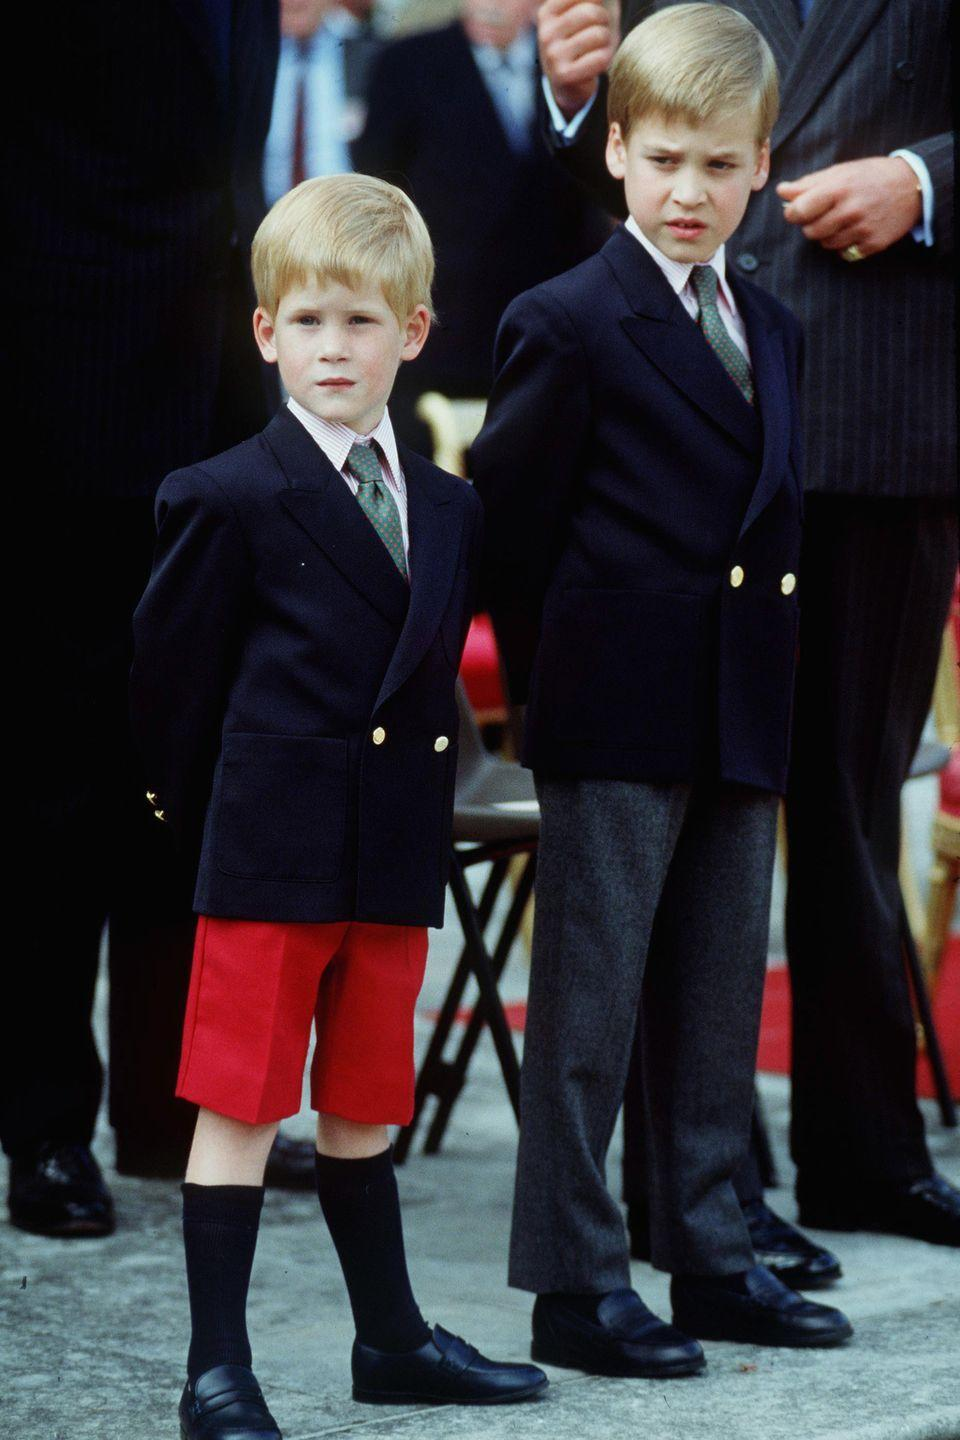 <p>Harry attends his first official royal engagement with Prince William, the 'Beating The Retreat' Parade at Kensington Palace.</p>